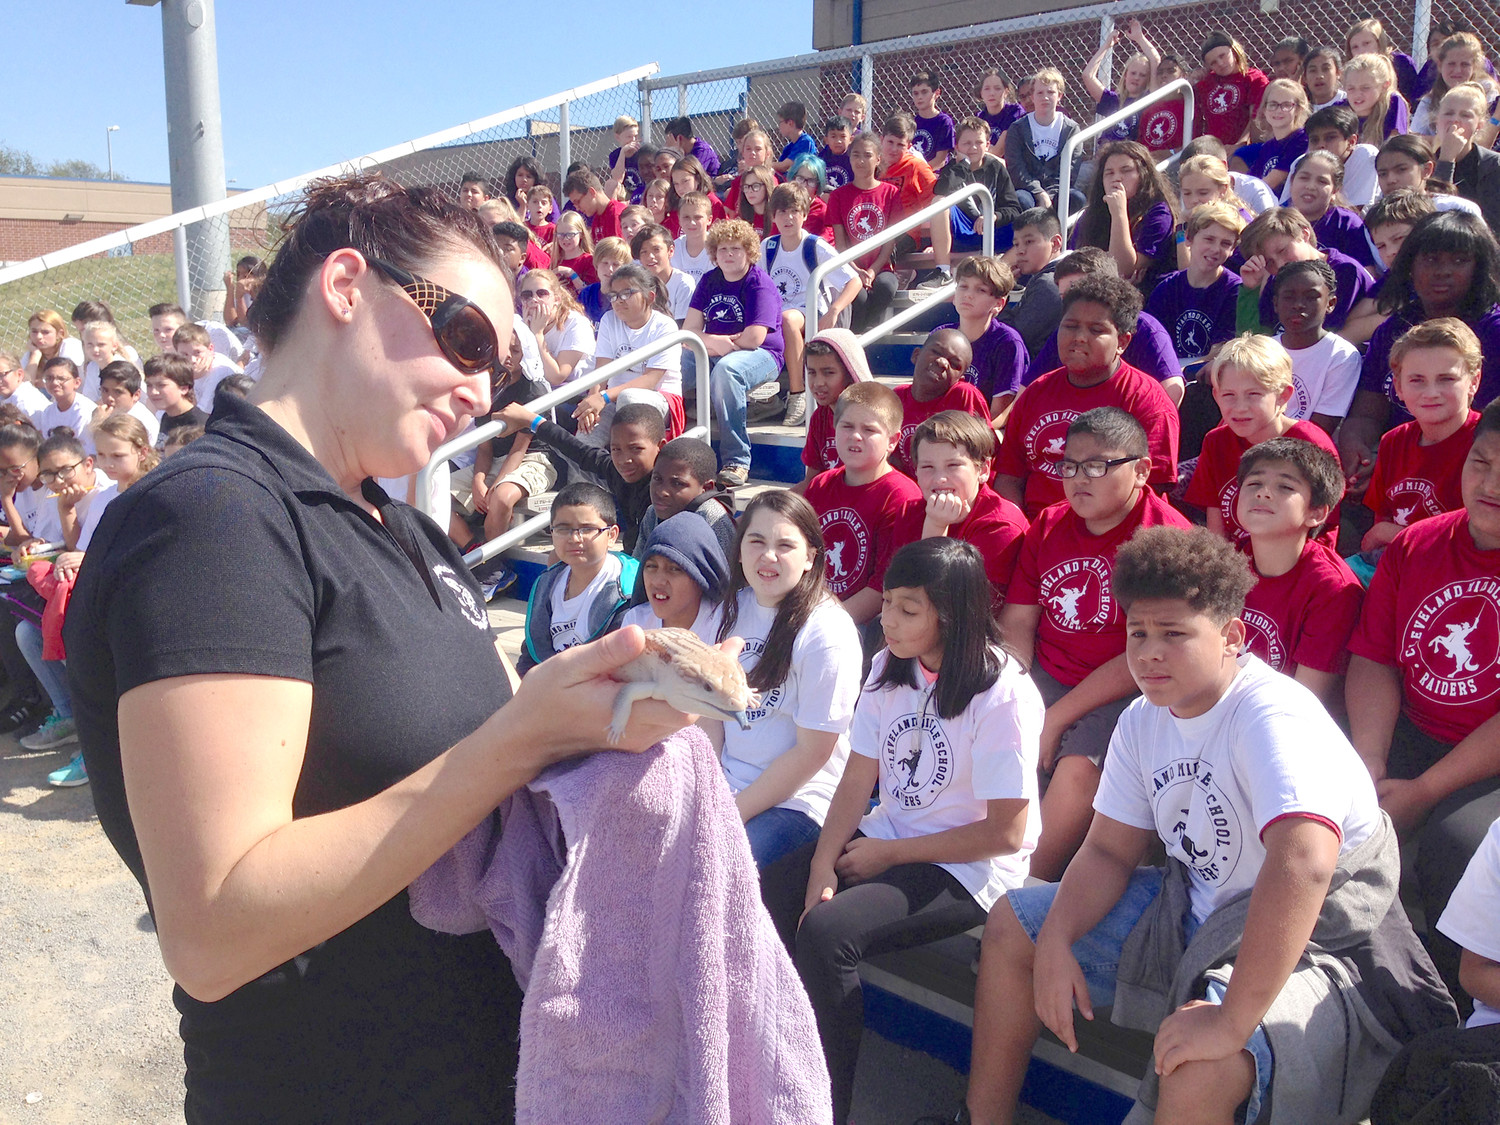 MISHALA MUNDALL of Raptors and Reptiles teaches Cleveland Middle School students about a blue-tongued skink during a recent visit to the school.